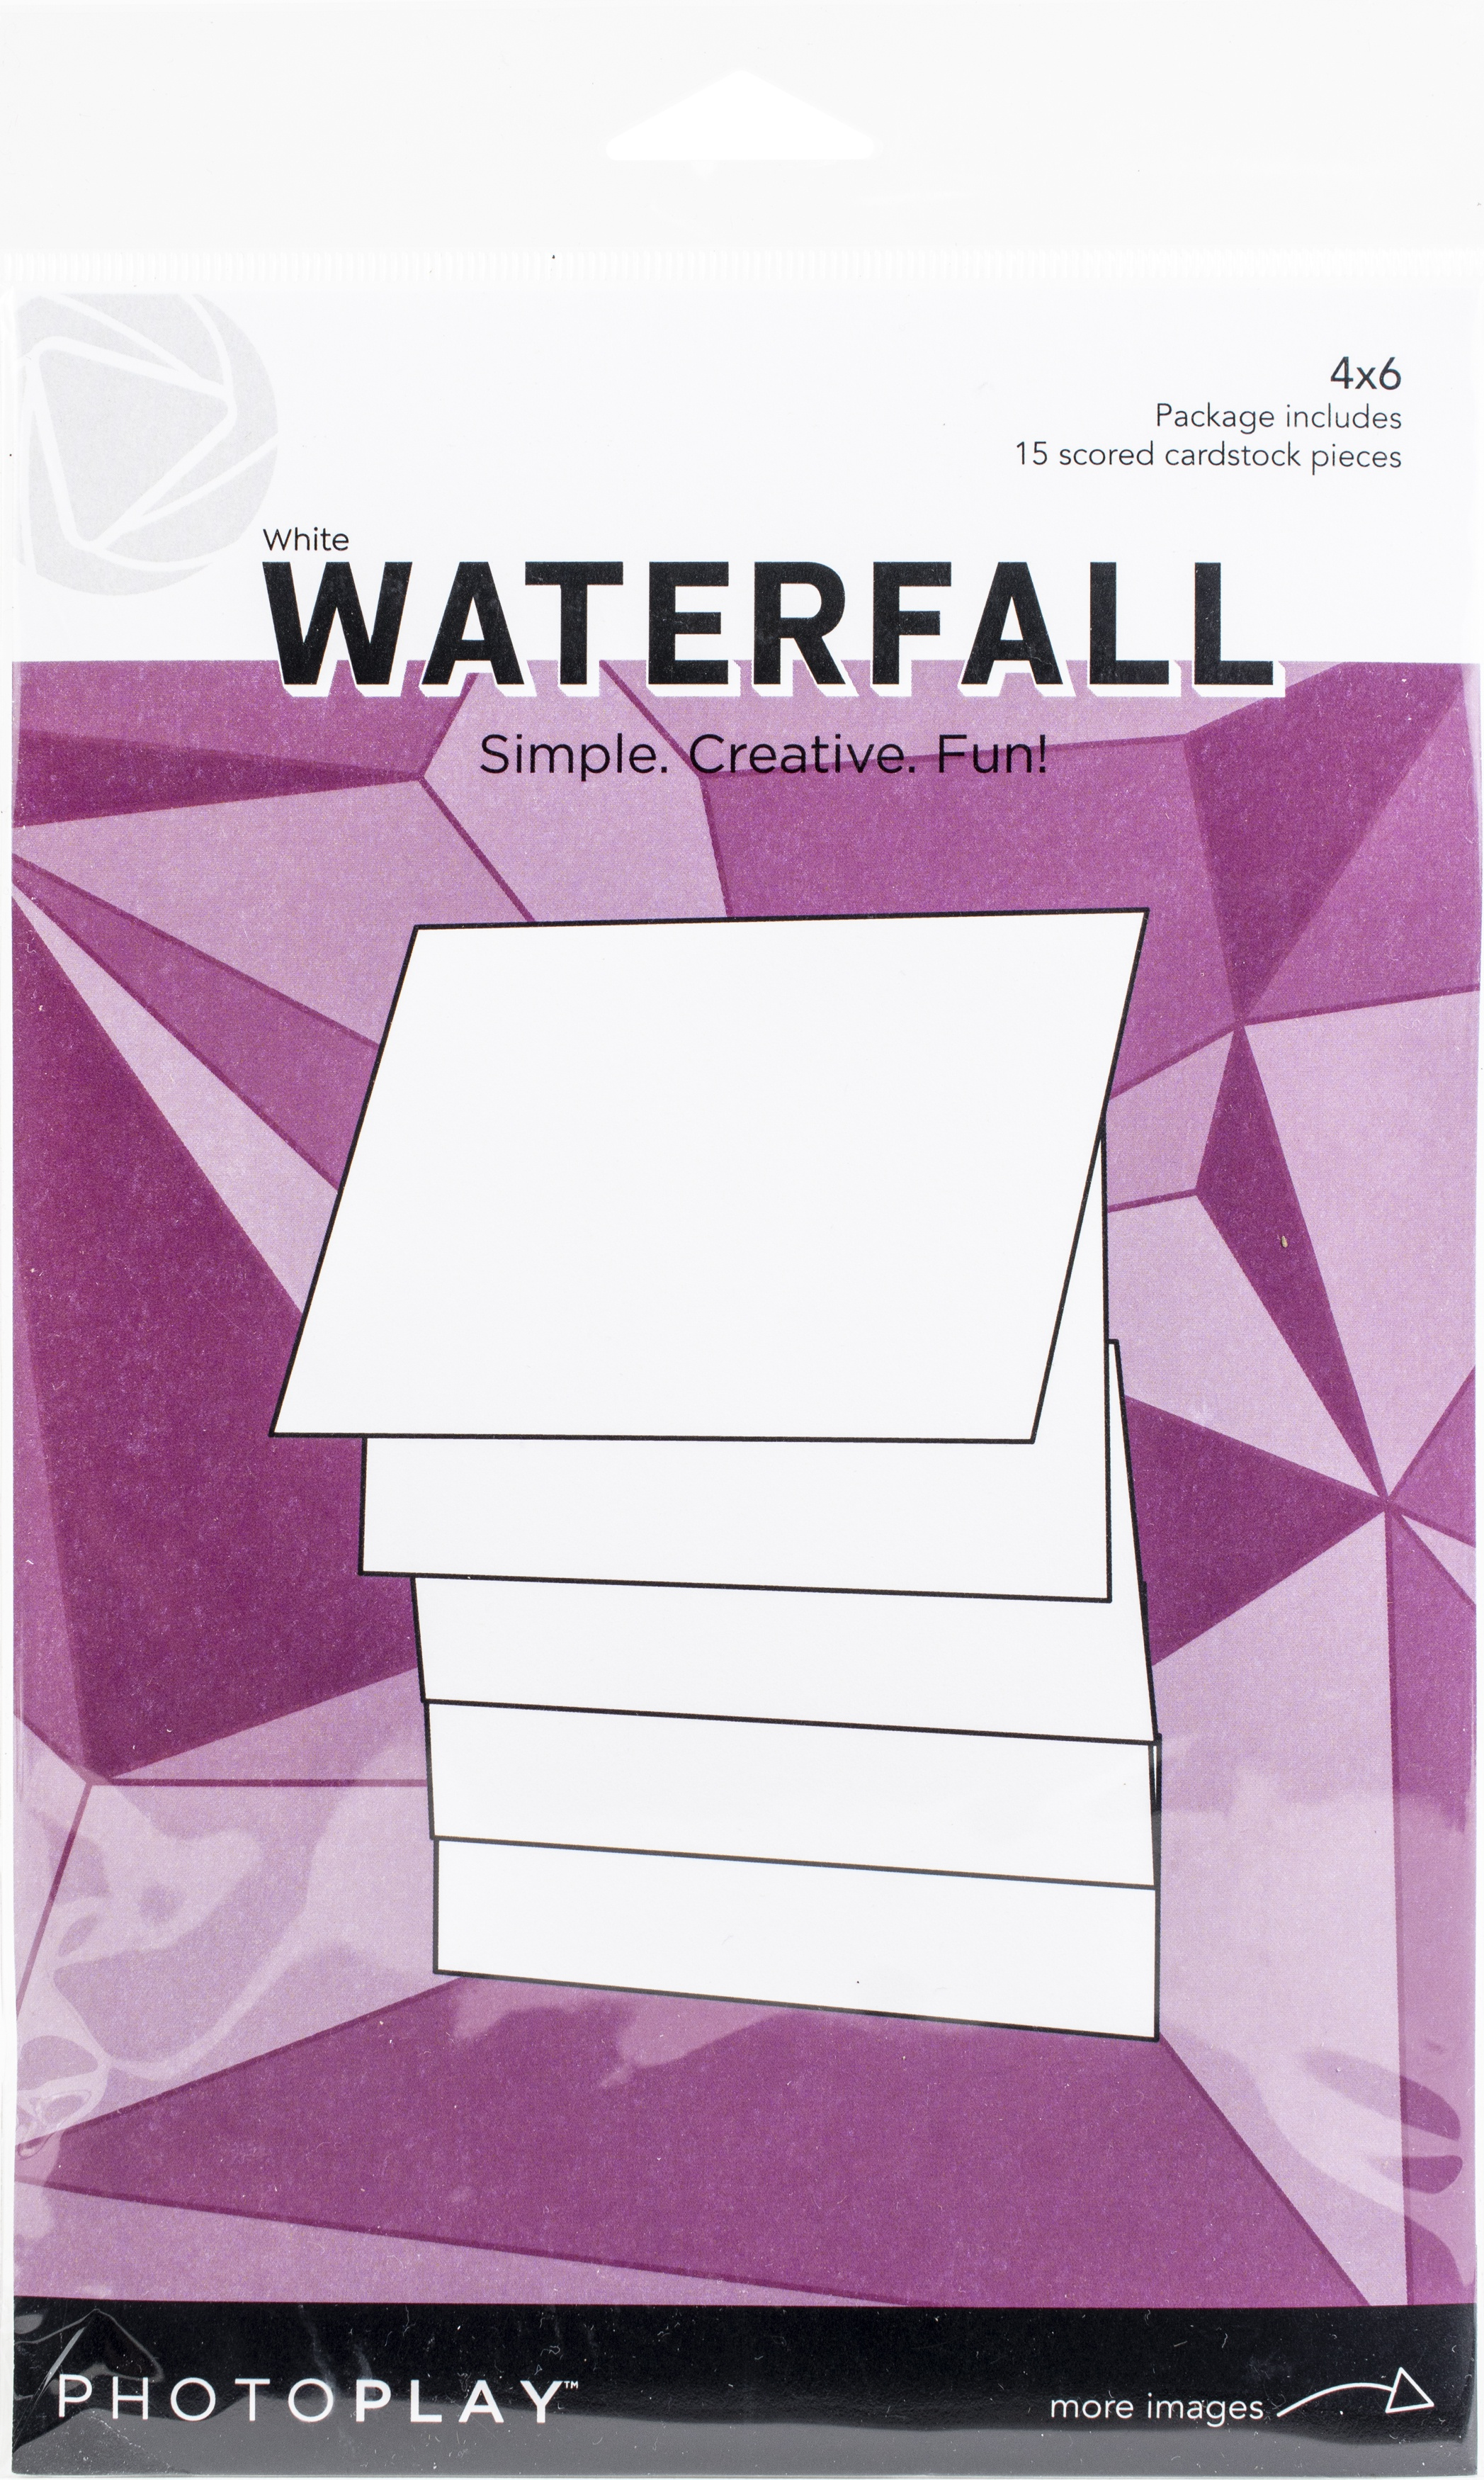 PhotoPlay Maker Series 4X6 Manual-White Waterfall